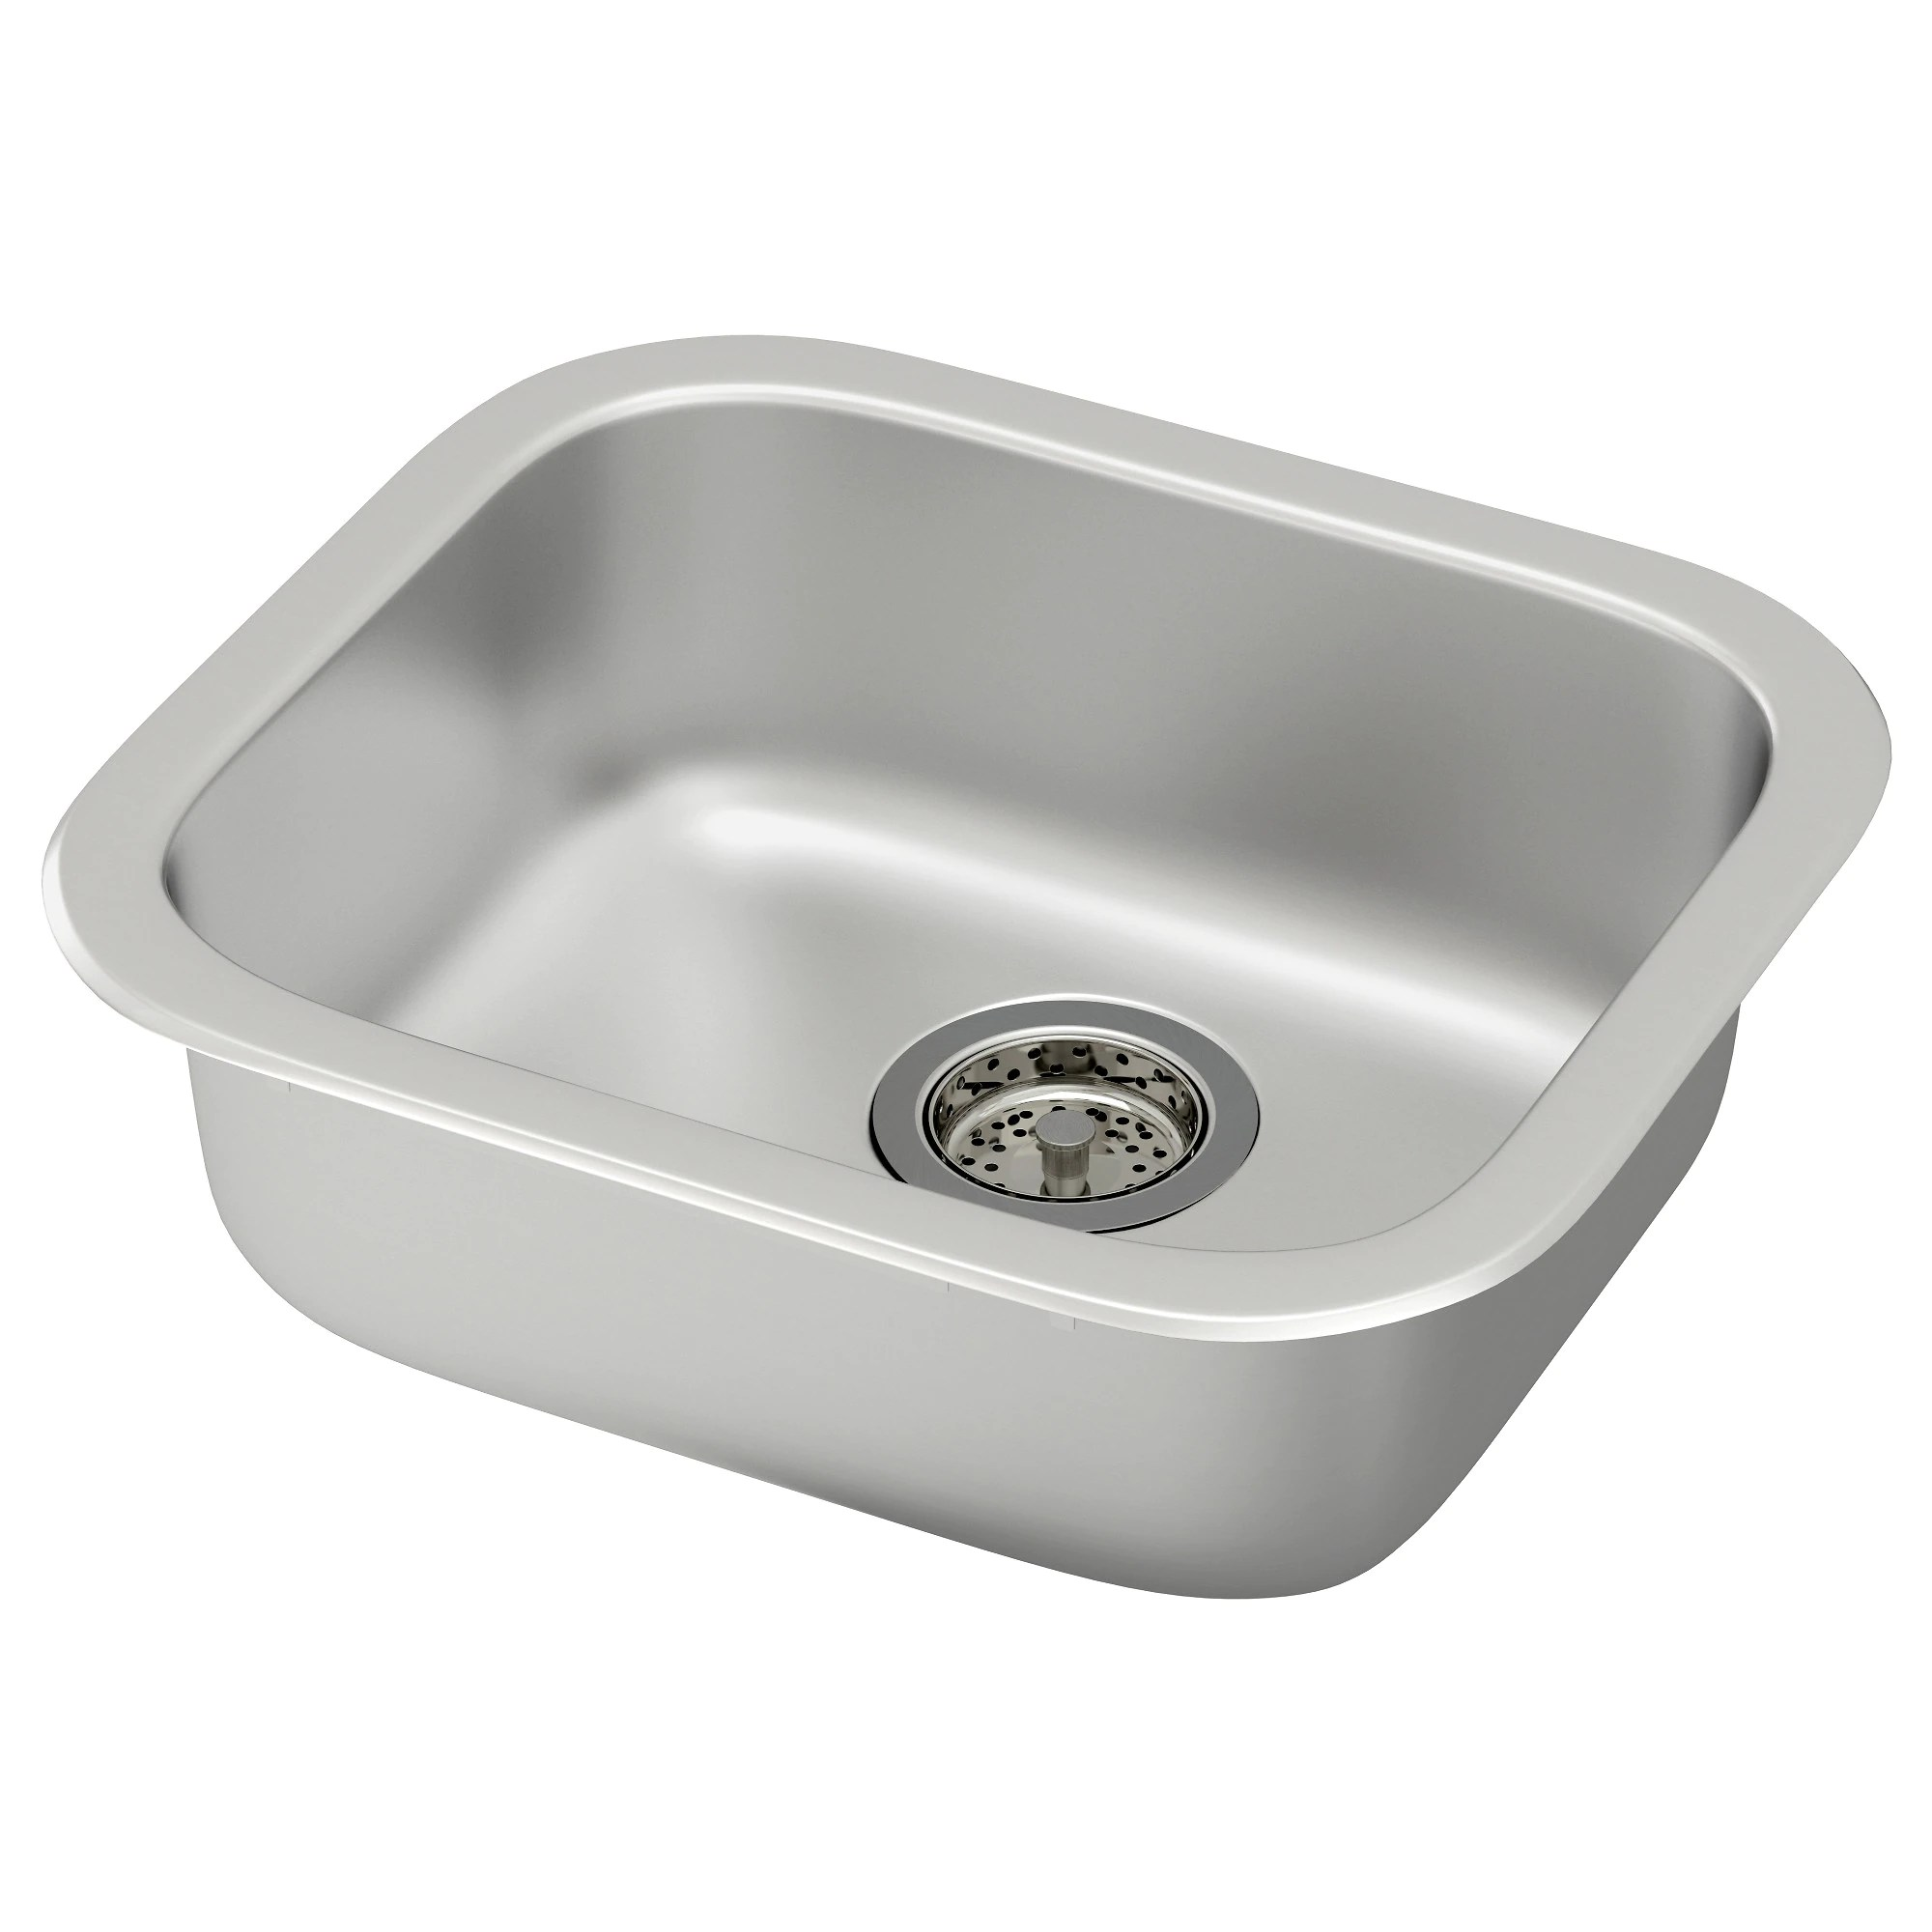 kitchen sink FYNDIG sink stainless steel Width 17 3 4 Depth 15 3